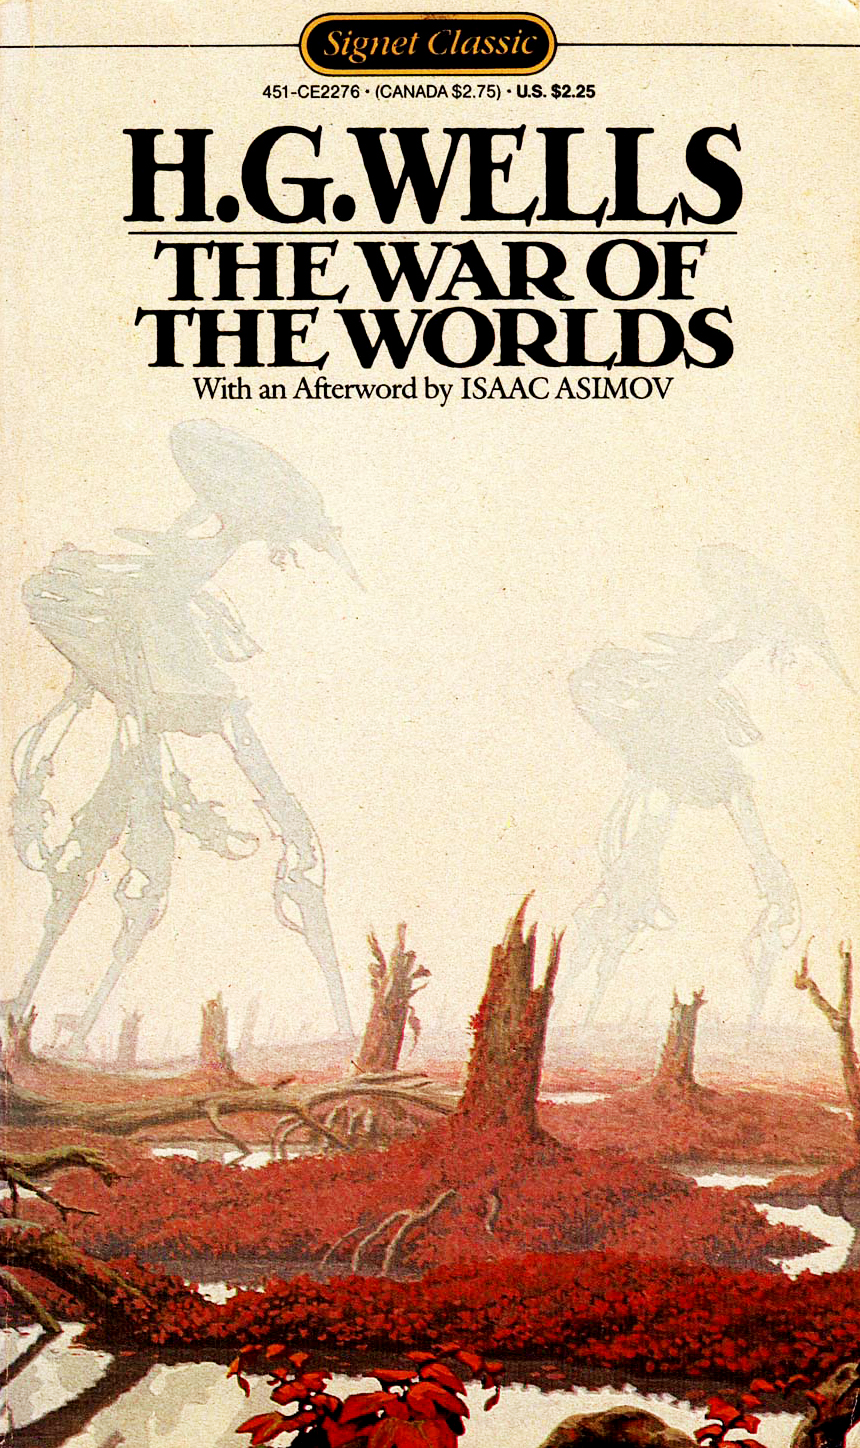 """an analysis of the novel war of the worlds by hg wells Literature: imperialism and war of the worlds  british novelist hg wells defined an entire genre with his 1898 novel, """"the war of the worlds,"""" a fantasy."""